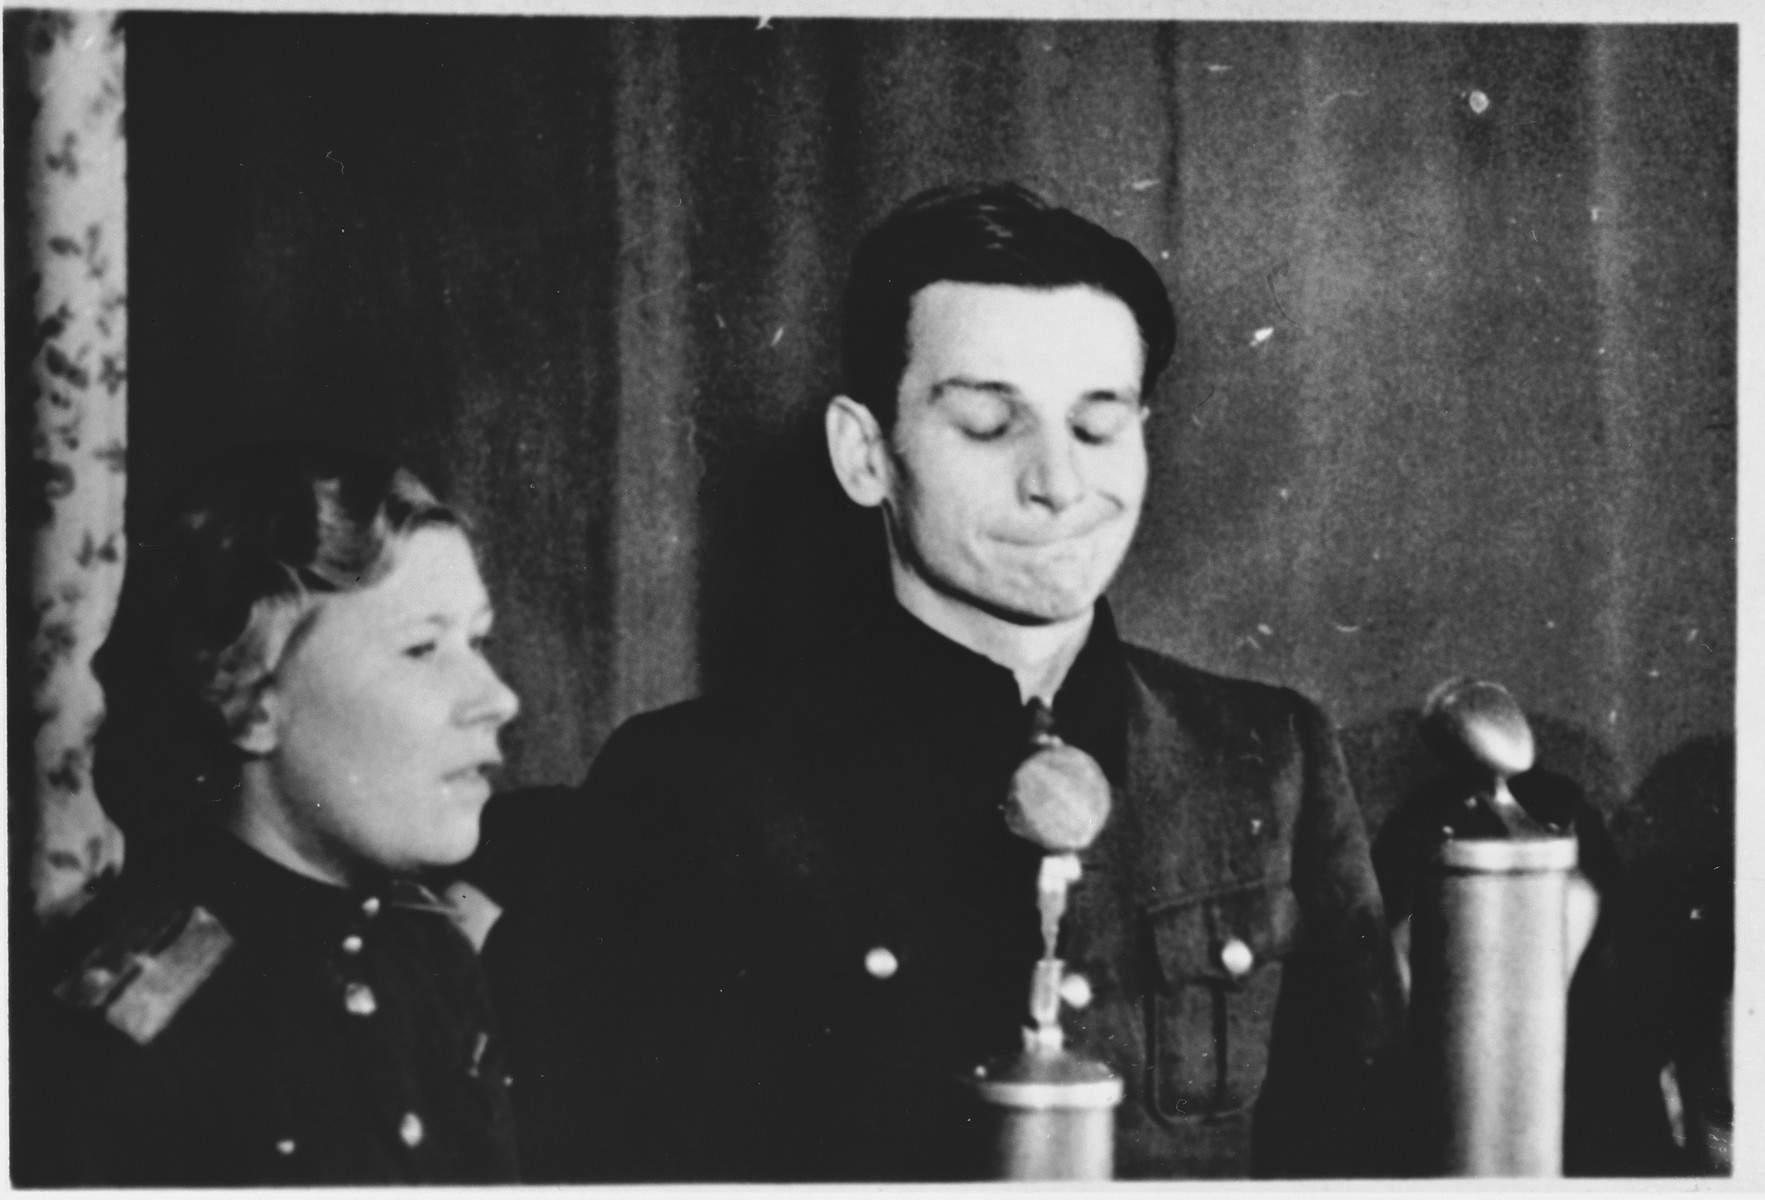 A defendant (probably Michael Koerner) speaks from the dock at the Sachsenhausen concentration camp war crimes trial in Berlin.